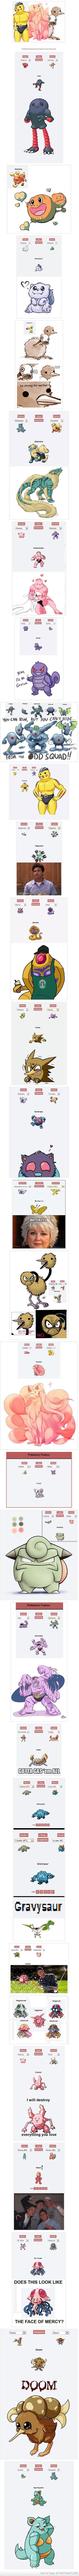 28 Of The Funniest Pokemon Fusions|||| PFFFFT I JUST DON'T KNOW HAHA